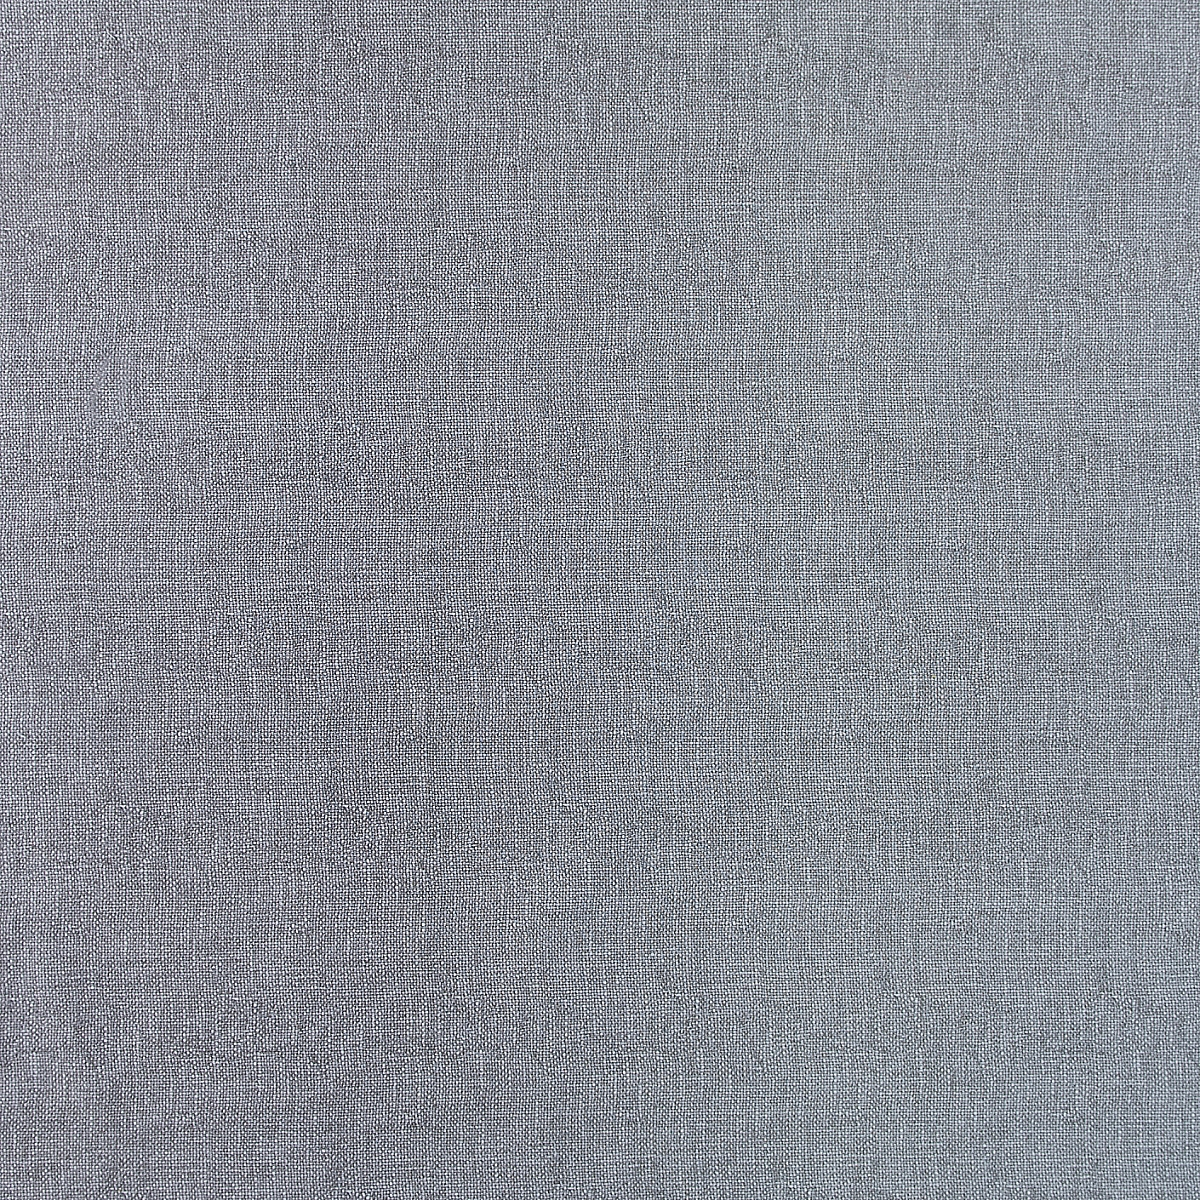 Chatter: Slate (fabric yardage)